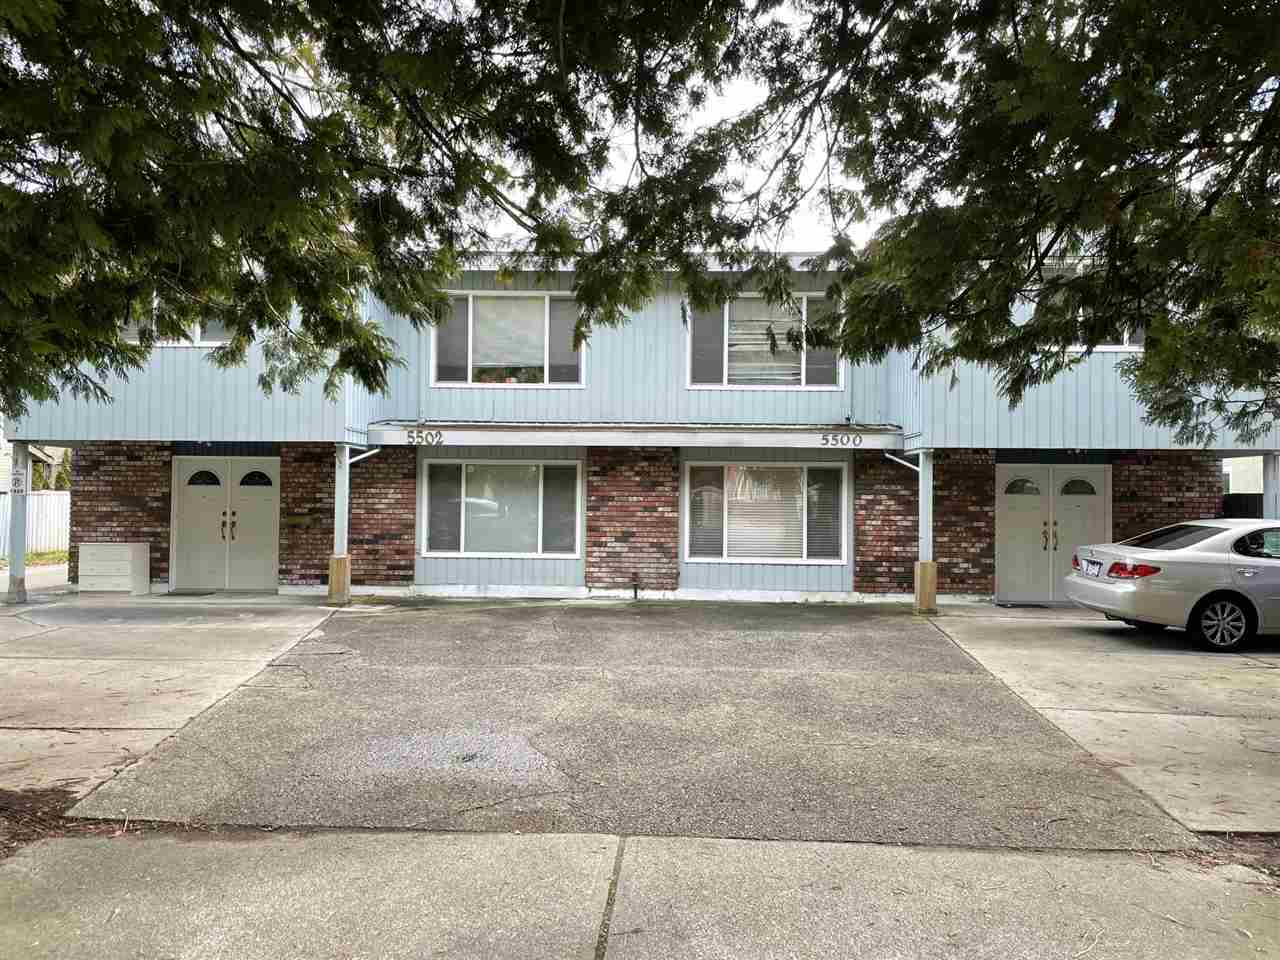 Duplex on 91 x 132 (12002 SF) Lot RD1 Zoned Fully updated 6000 SF living area, 12 bed, 5 den, 9 bath, 2+2 kitchens, 4 living, 2 family rooms, 2  laundry. South back yard, newer roof, vinyl windows, furnaces, paint hot water tanks, plumbing fixtures. Great potential.